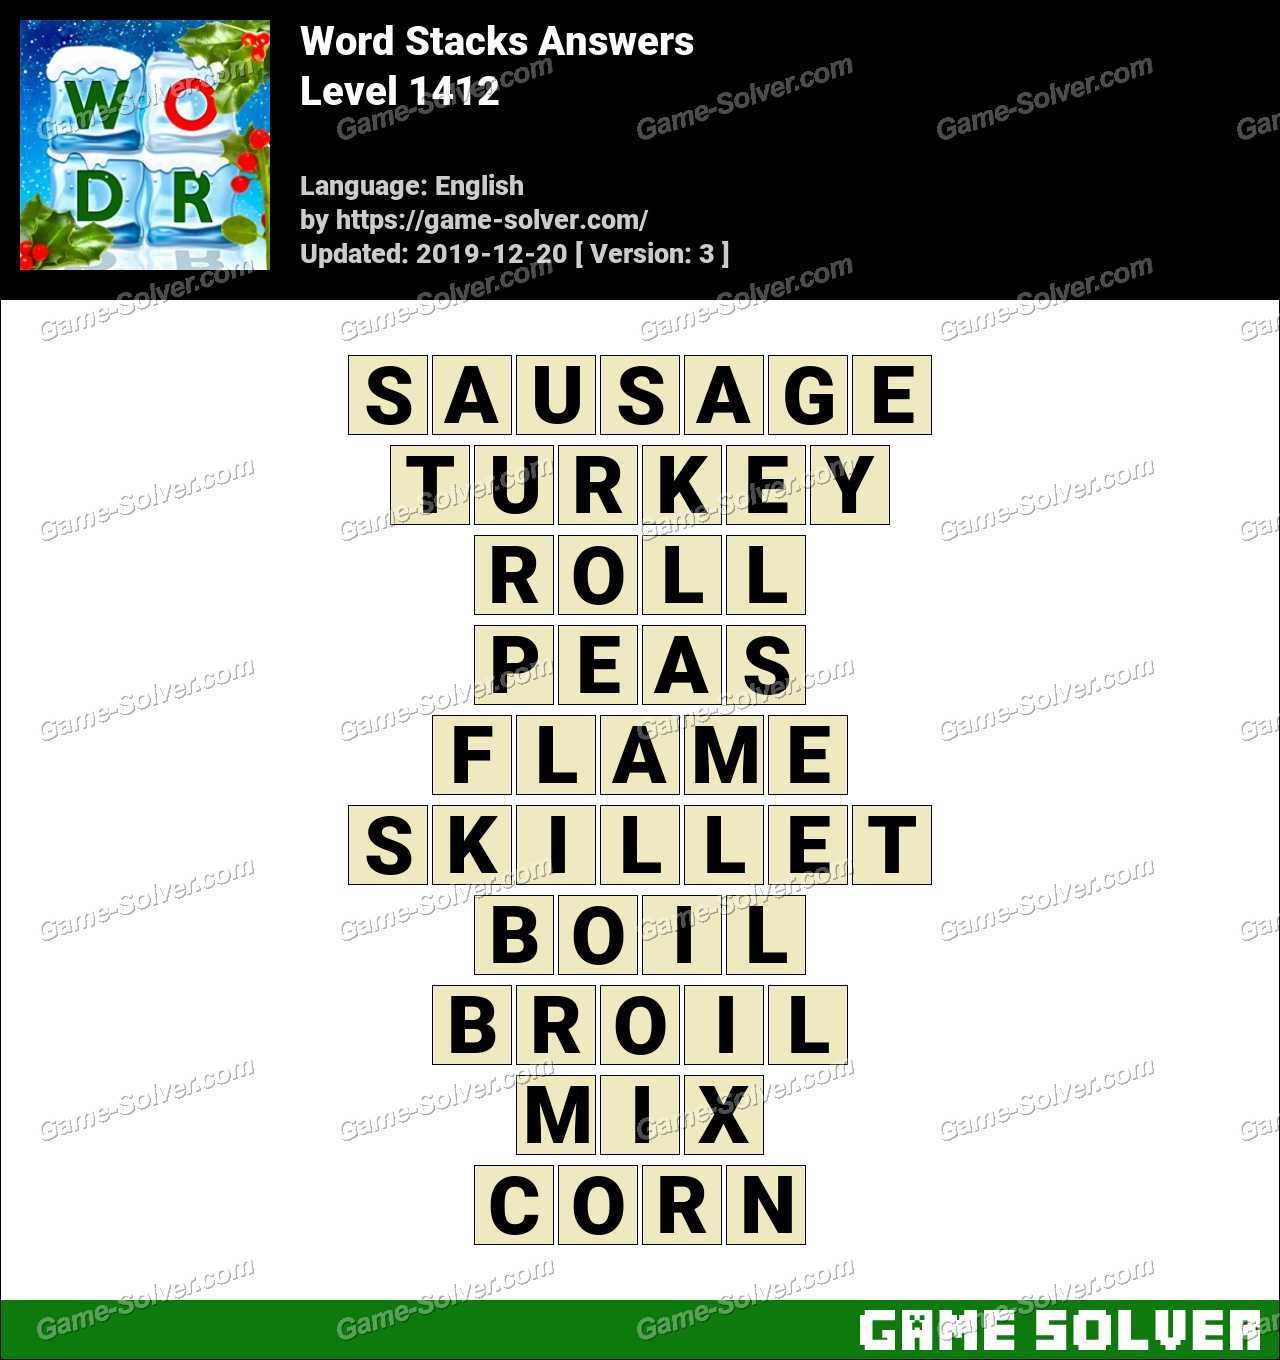 Word Stacks Level 1412 Answers